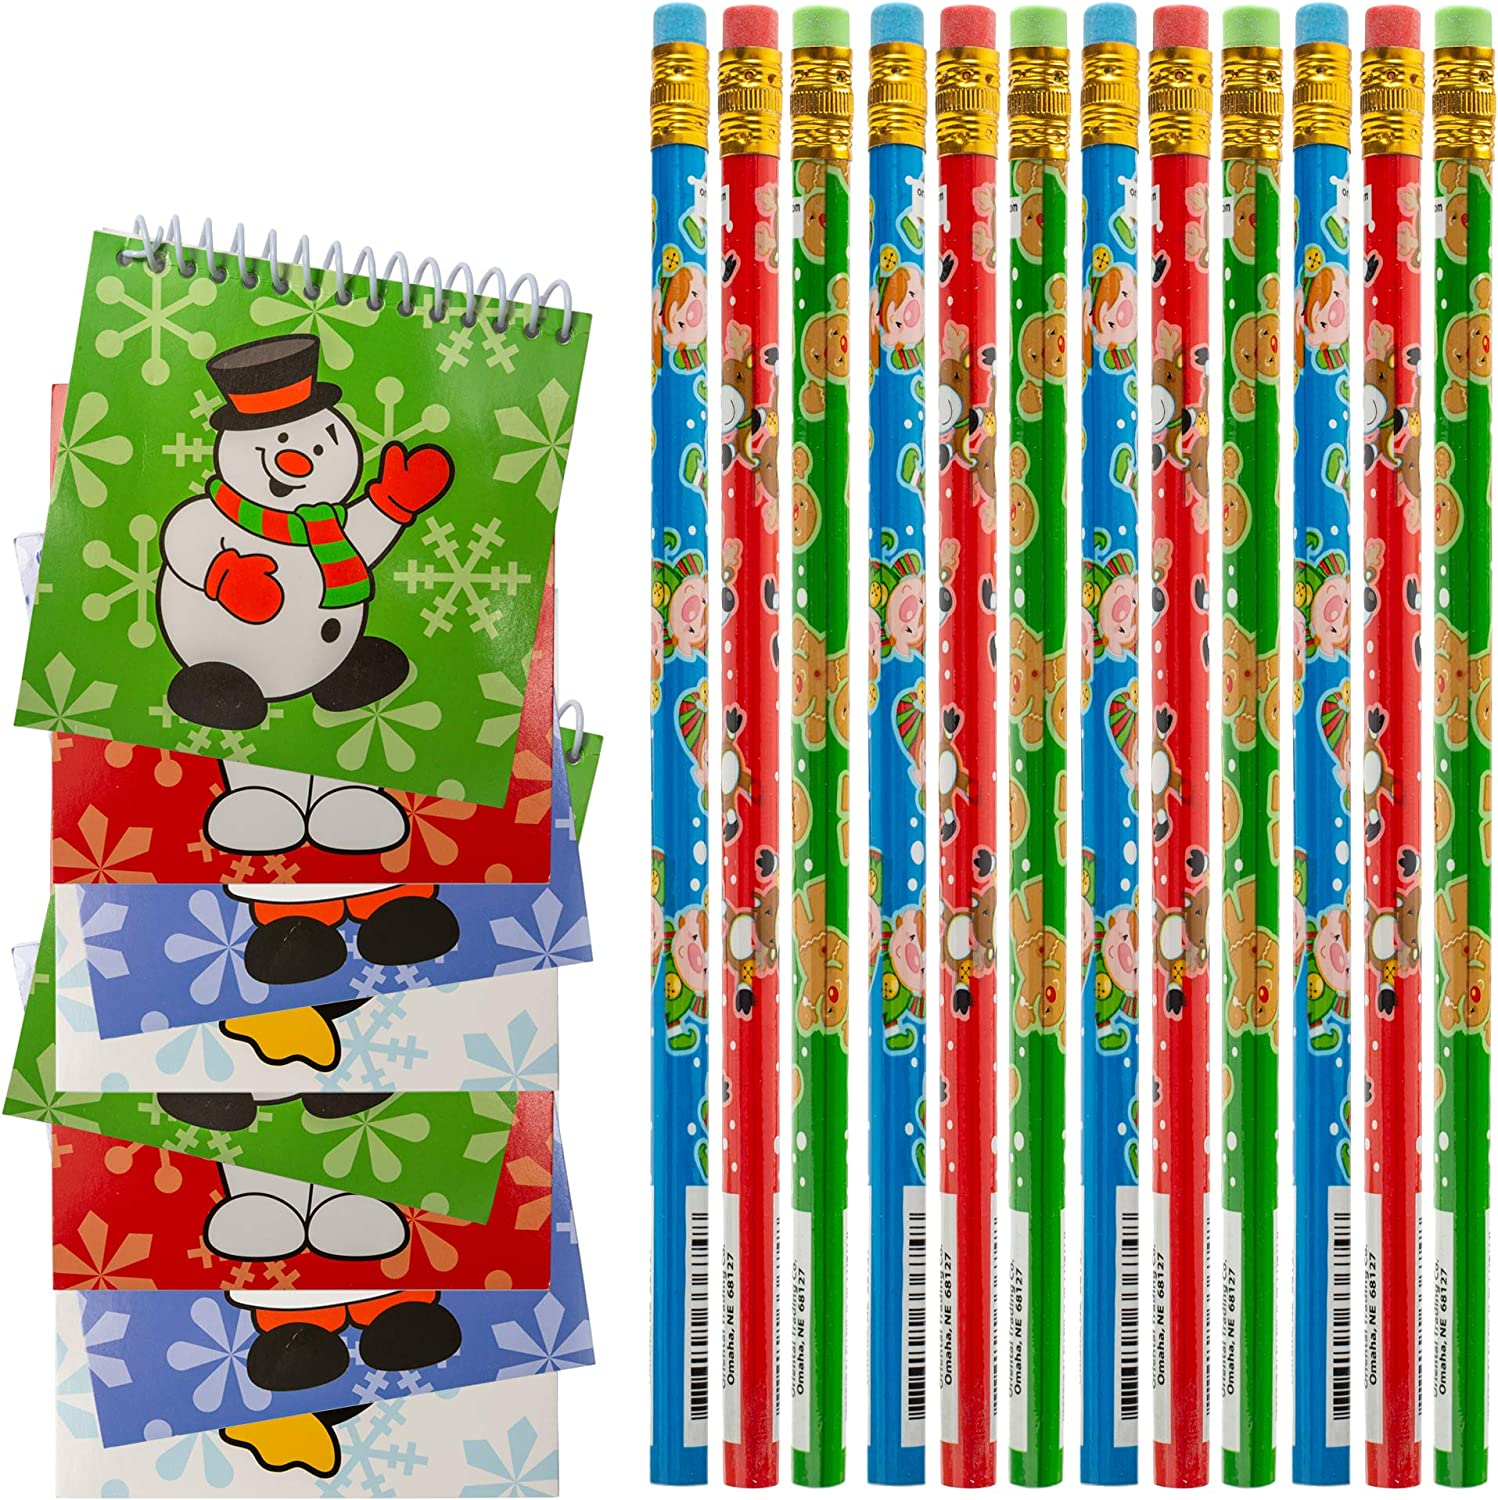 "Goody Bag Handout Assortment Kids Activity And Fun Reward Prizes 24 Pcs Christmas Party Favor Stuffers Holiday Themed 12 7/"" Coloring Books And 12 Pack Crayons"